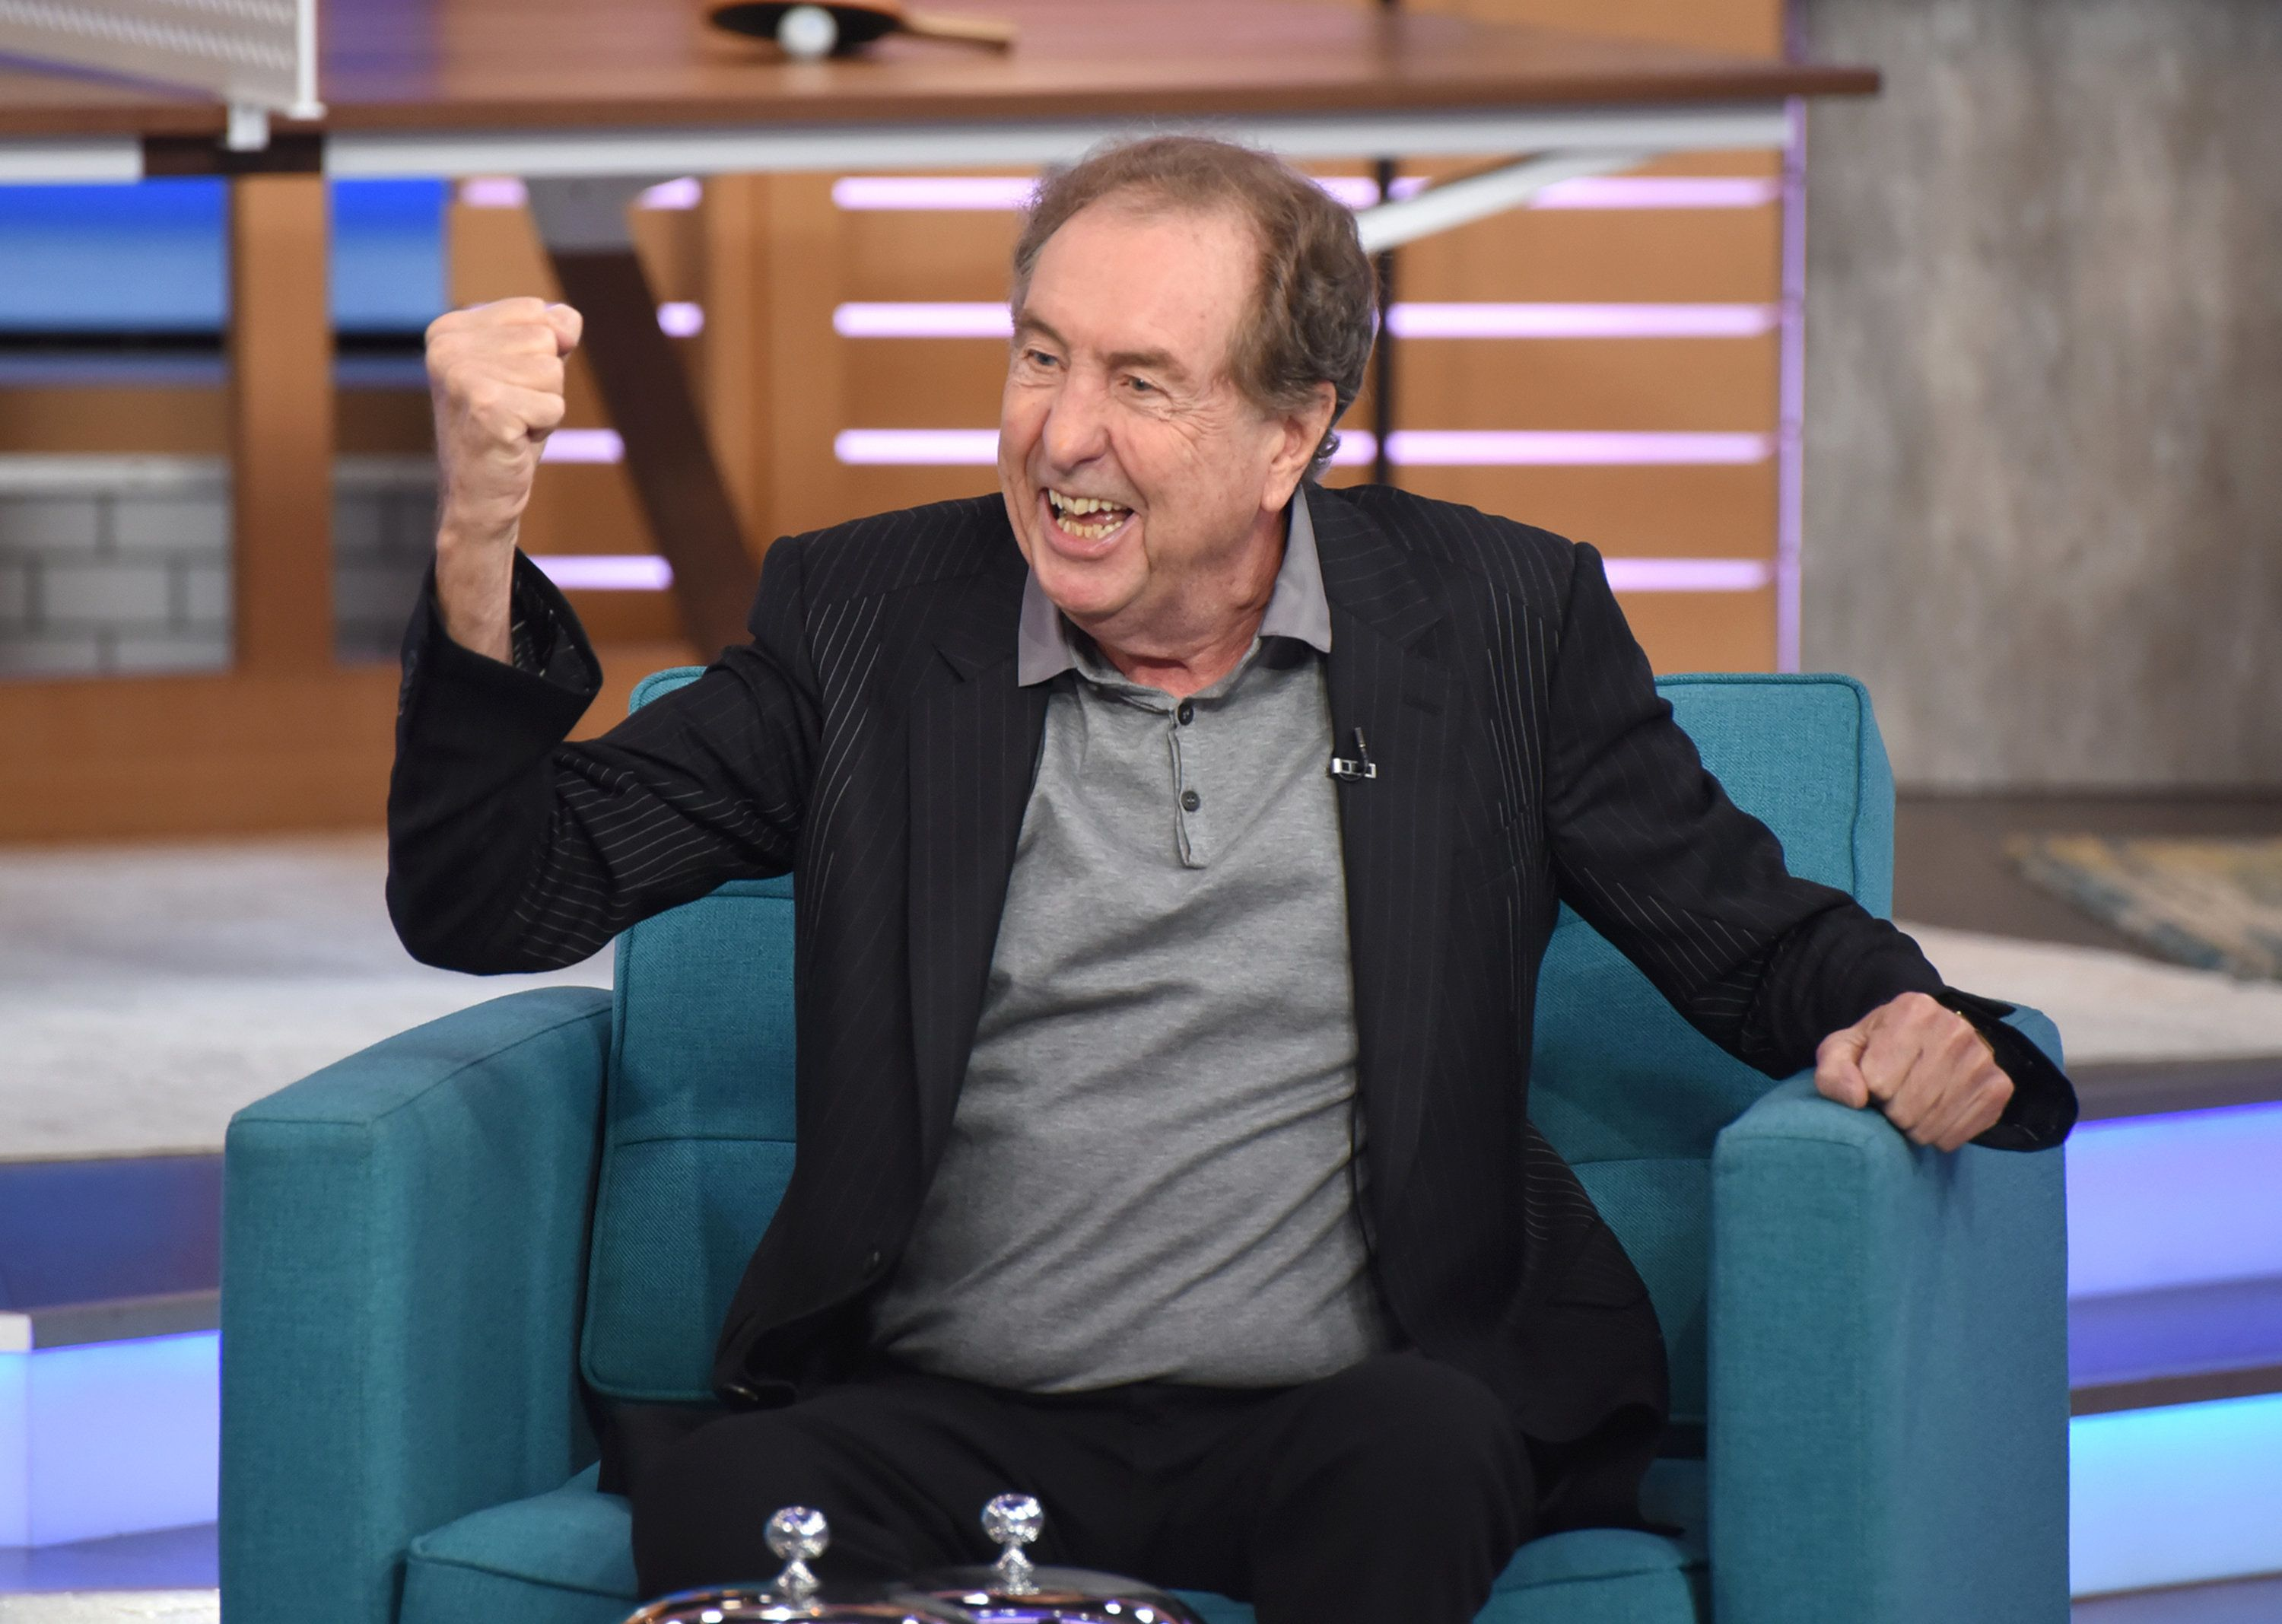 Monty Python Legend Eric Idle Mocks Trump's Wall With An Idea From 'Holy Grail'